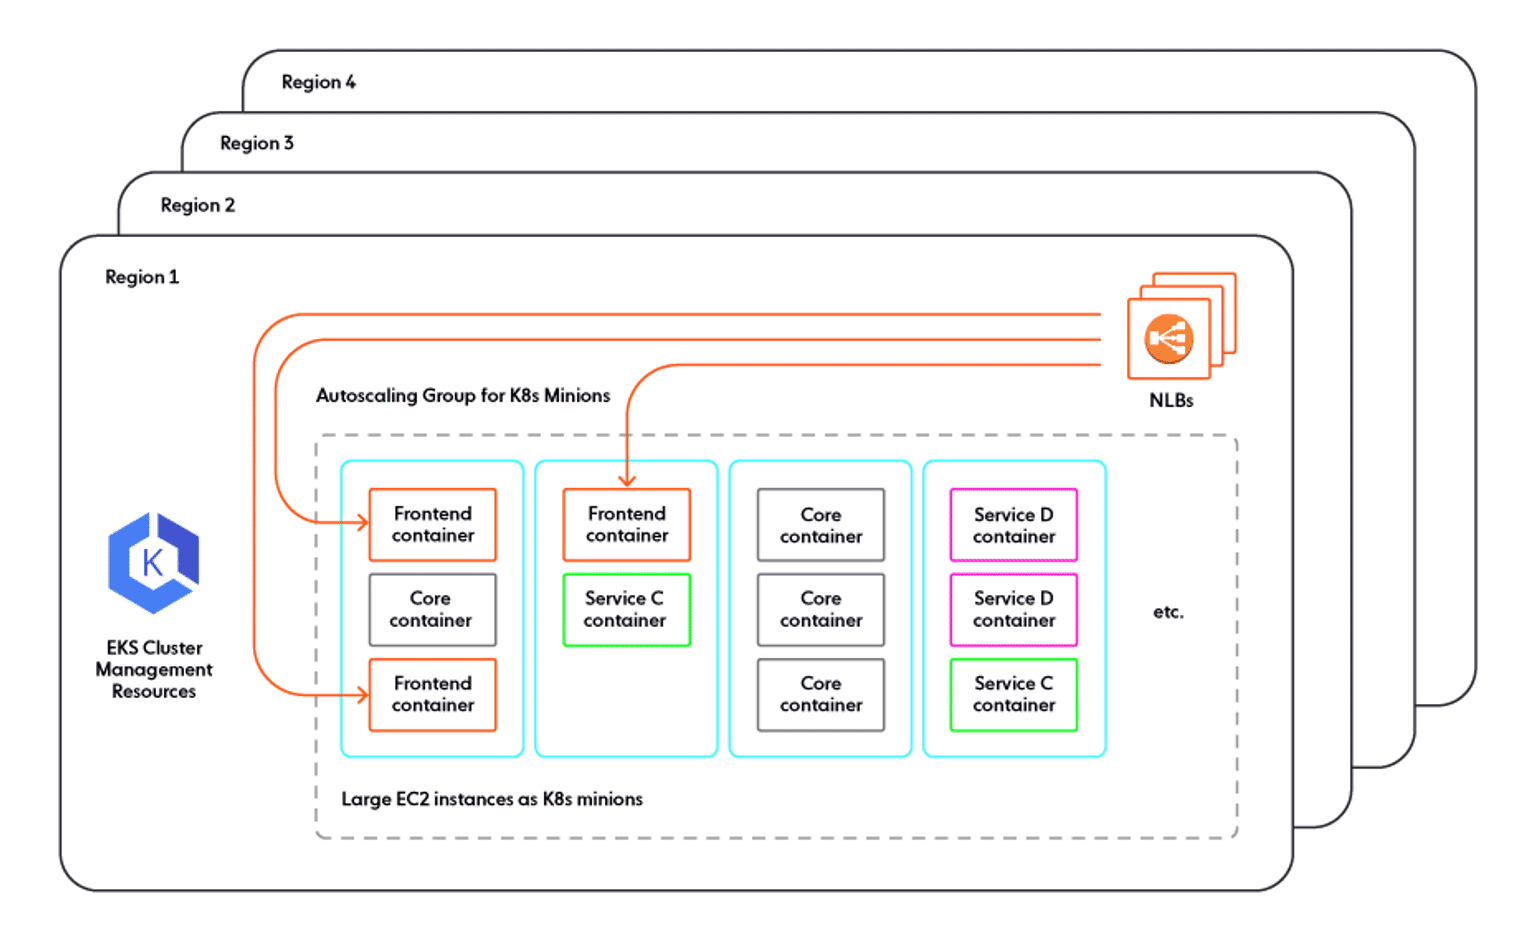 How Ably's architecture would look if we migrated production to Kubernetes